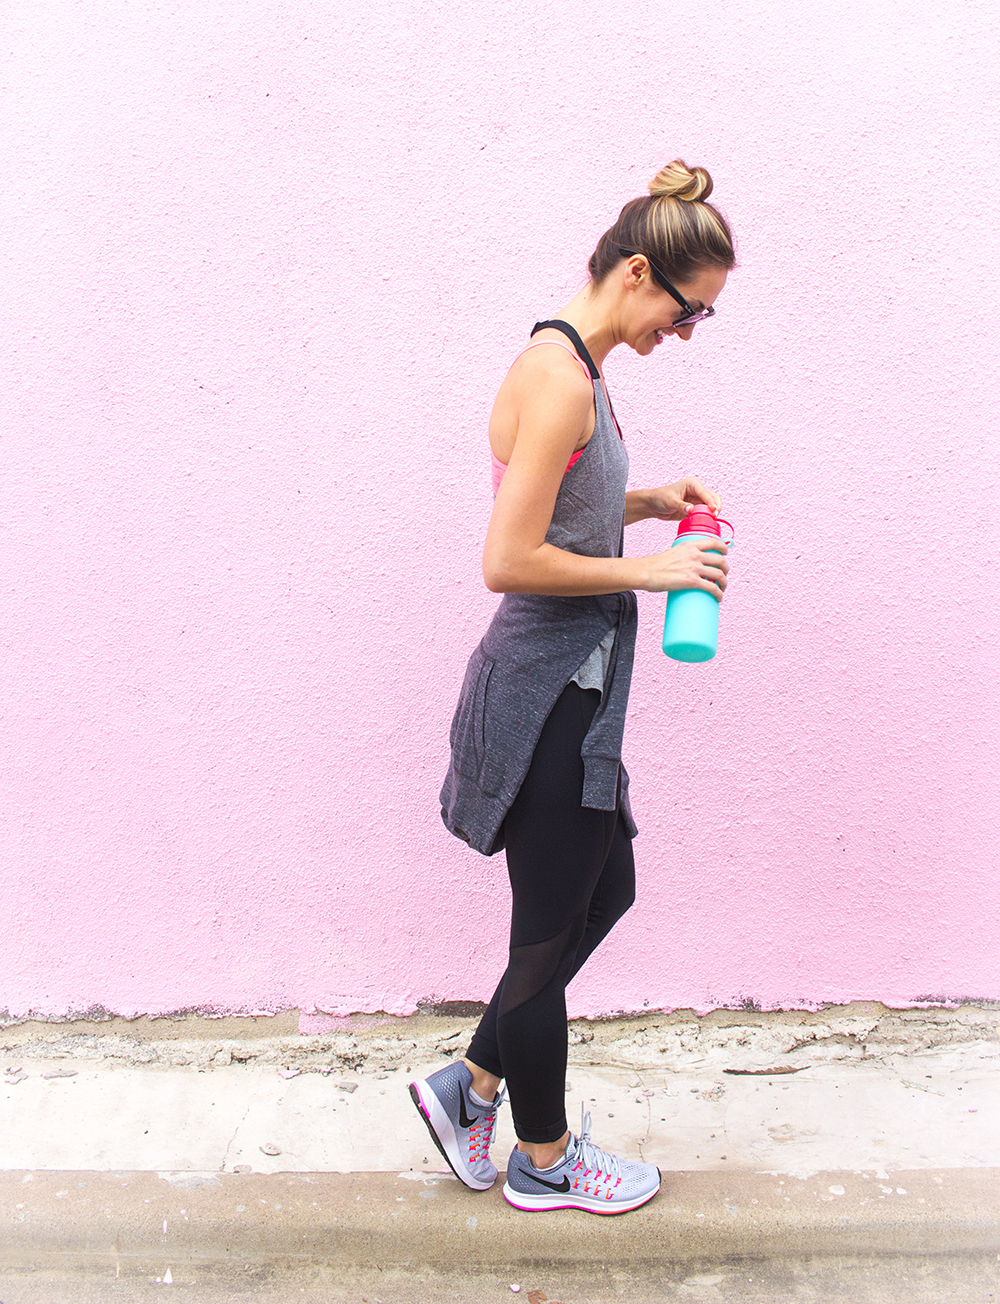 livvyland-blog-olivia-watson-jack-rabbit-nyc-workout-nike-outfit-neon-pegasis-running-shoes-fitness-outfit-inspiration-4